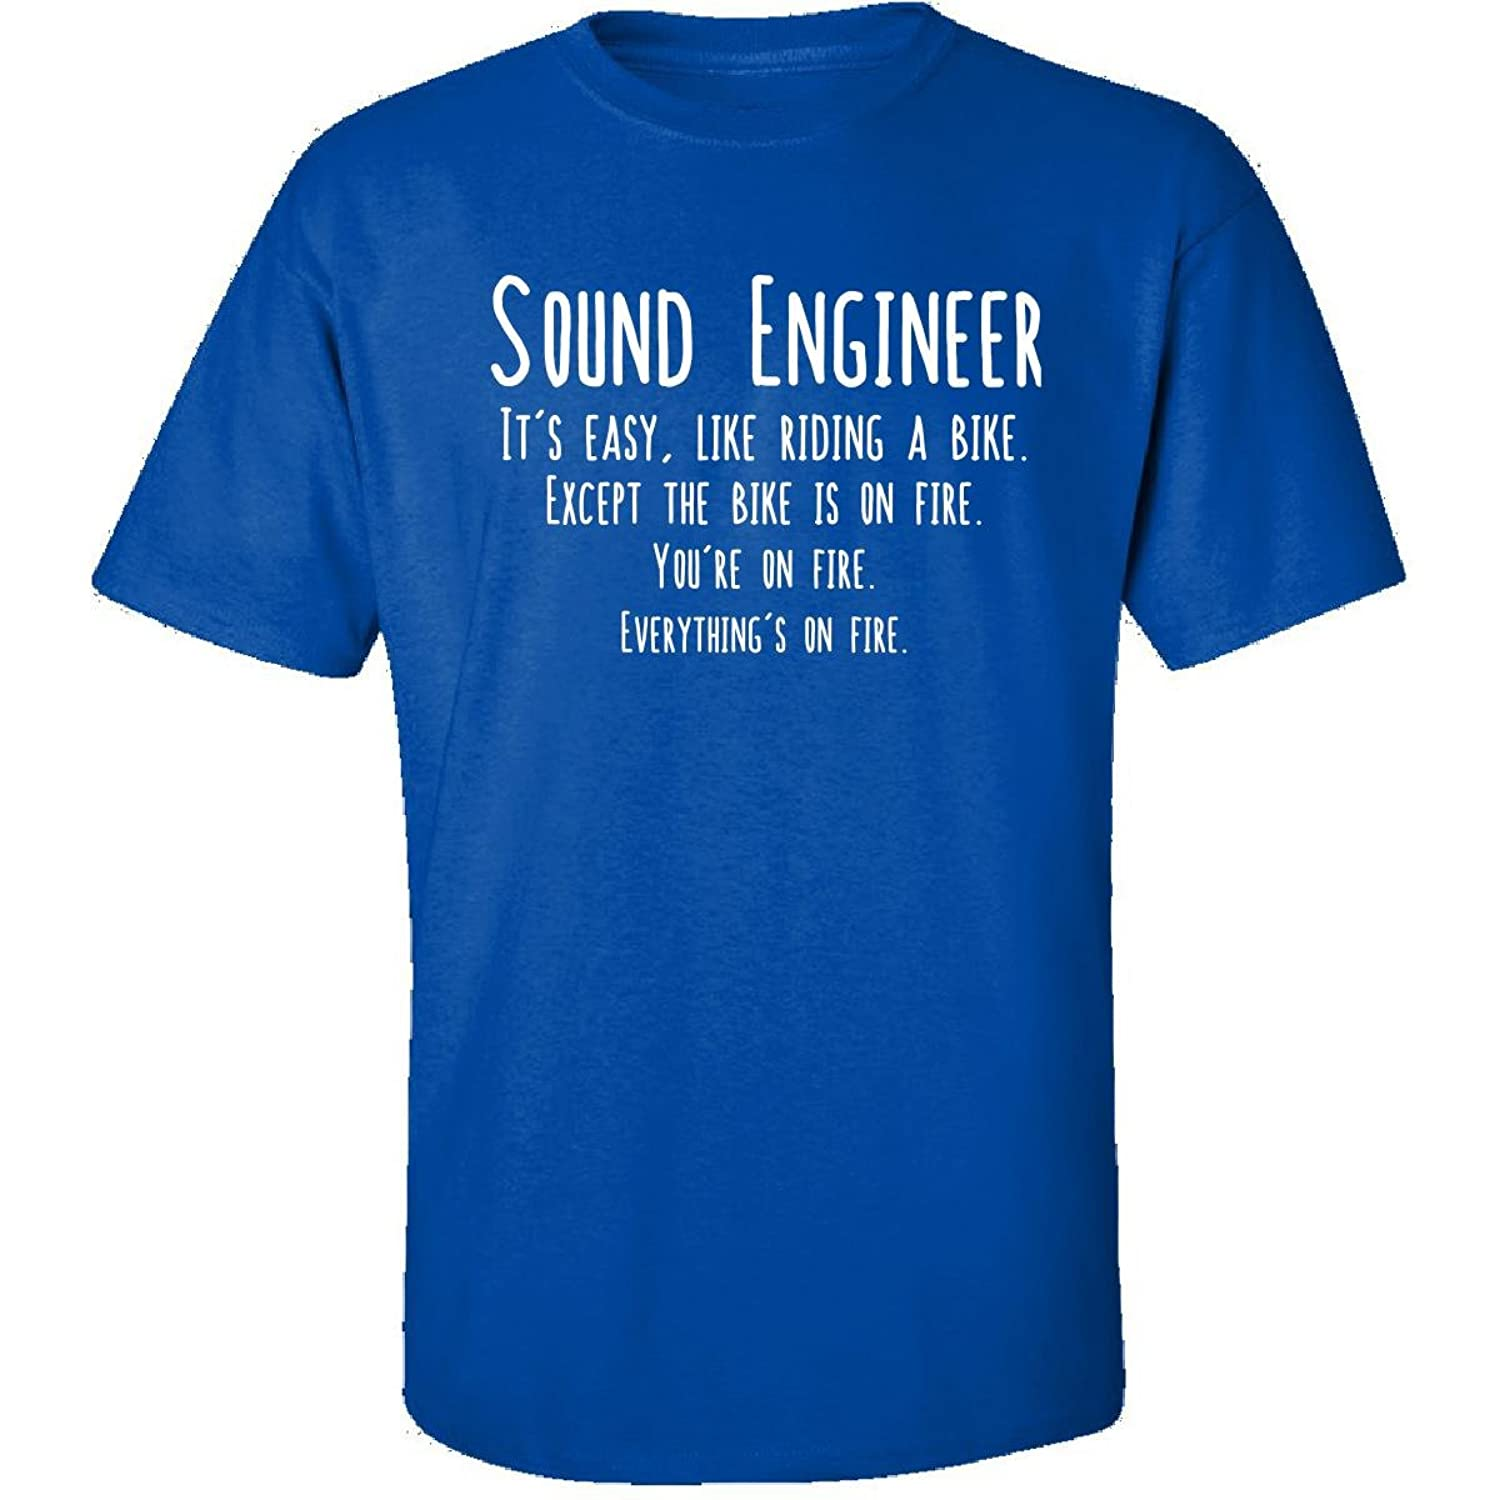 Sound Engineer Is Easy Like Riding Bike On Fire Funny Job - Adult Shirt